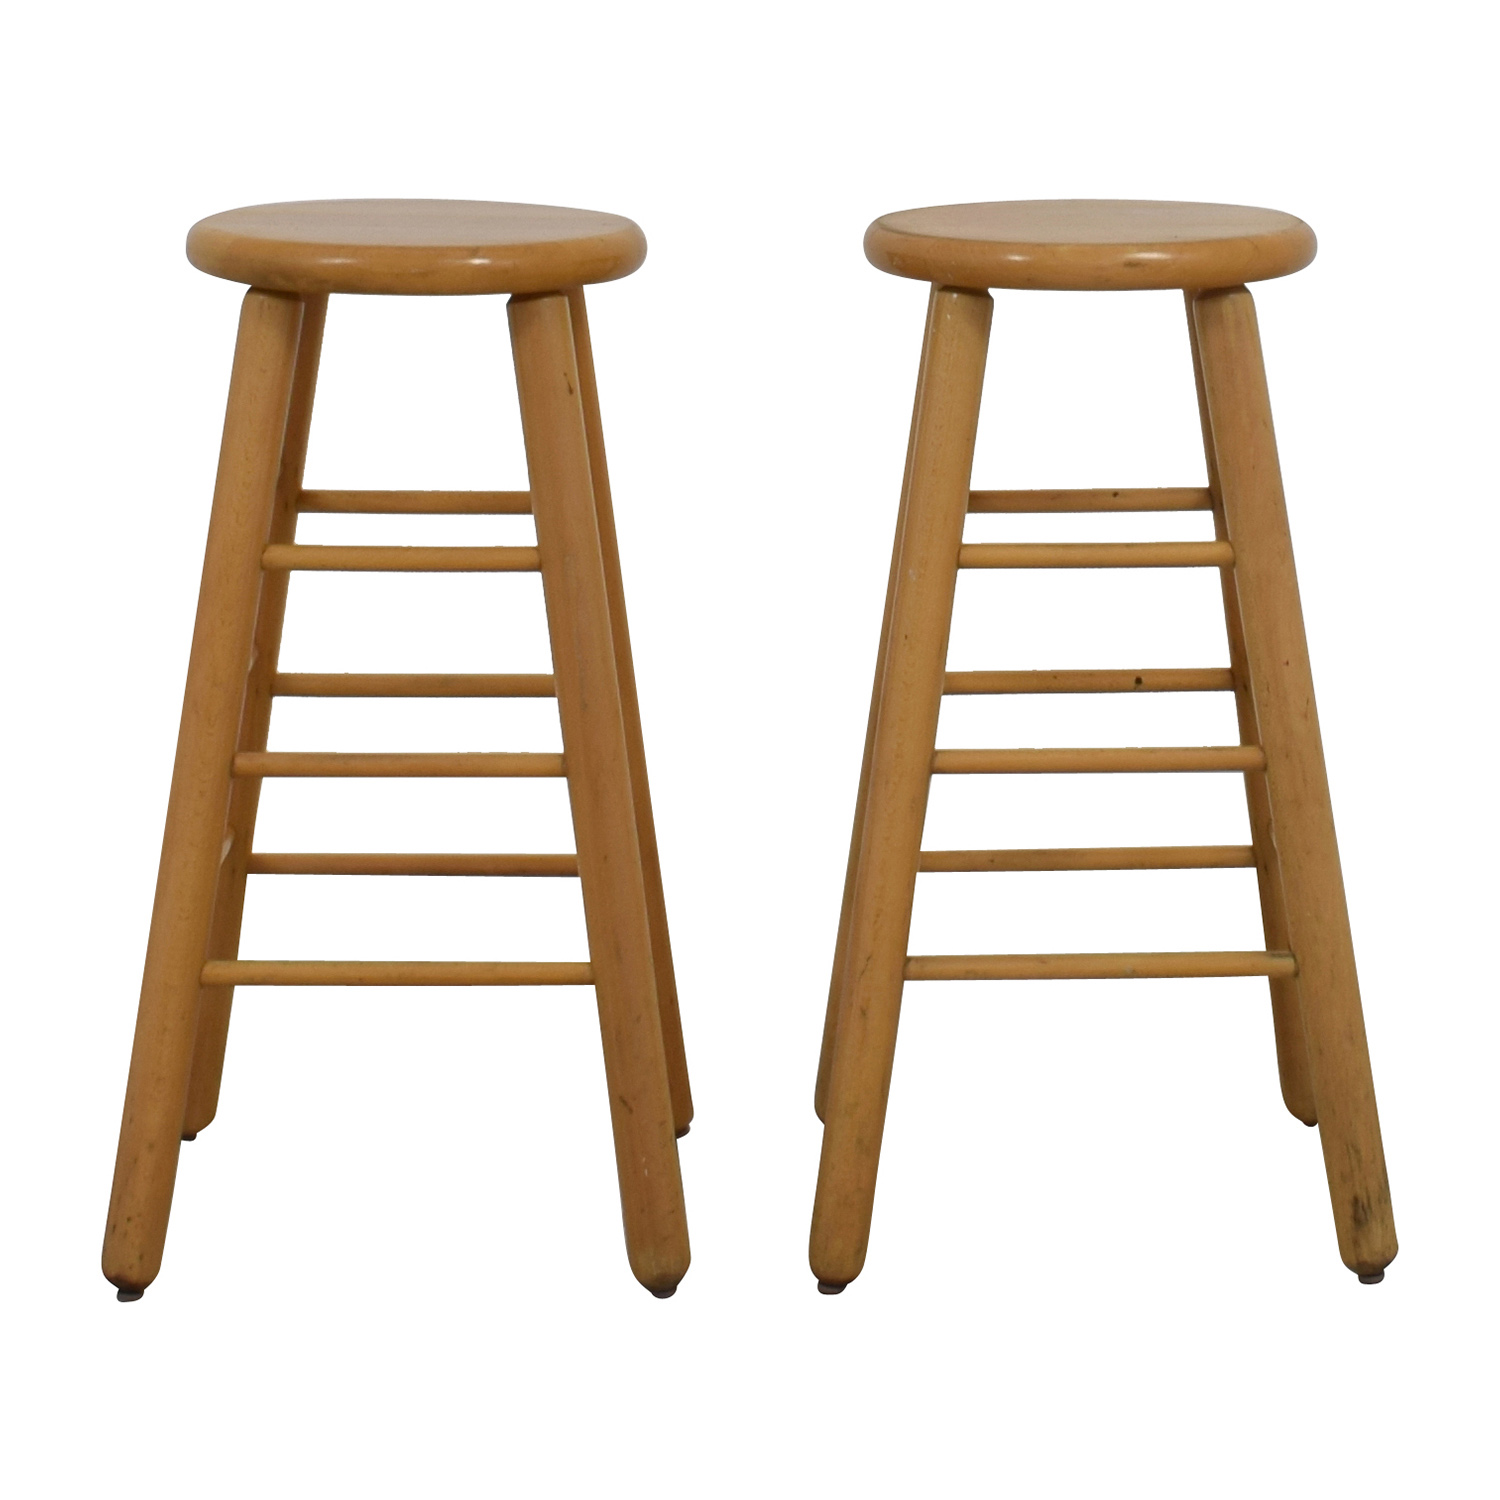 Wood Bar Stools blonde wood